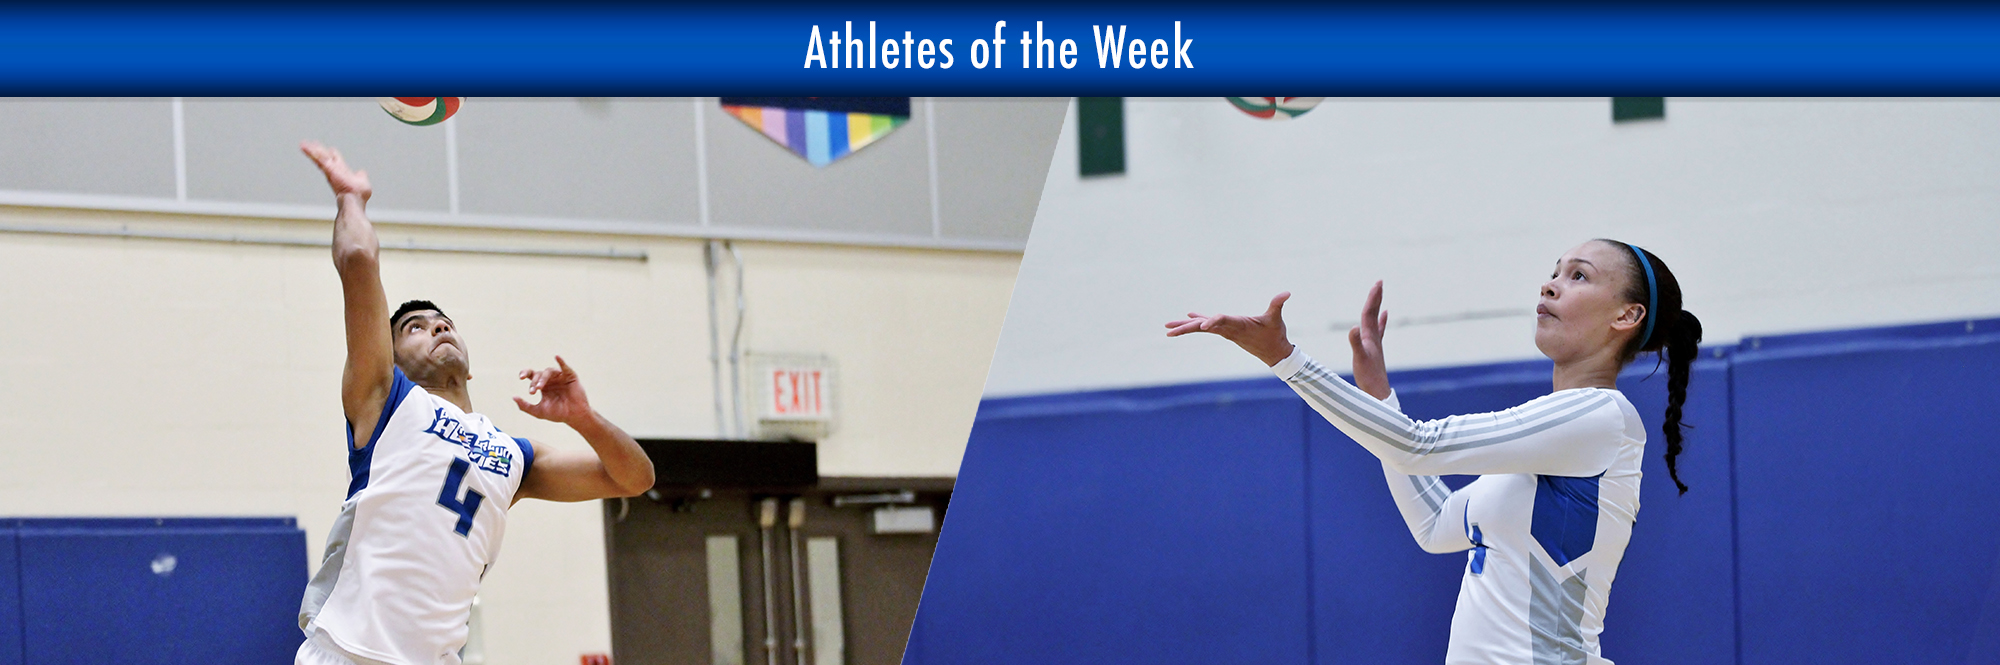 BEATRIZ VILCHES, VIVEK MATHIMAKKI NAMED HUSKIES ATHLETES OF THE WEEK